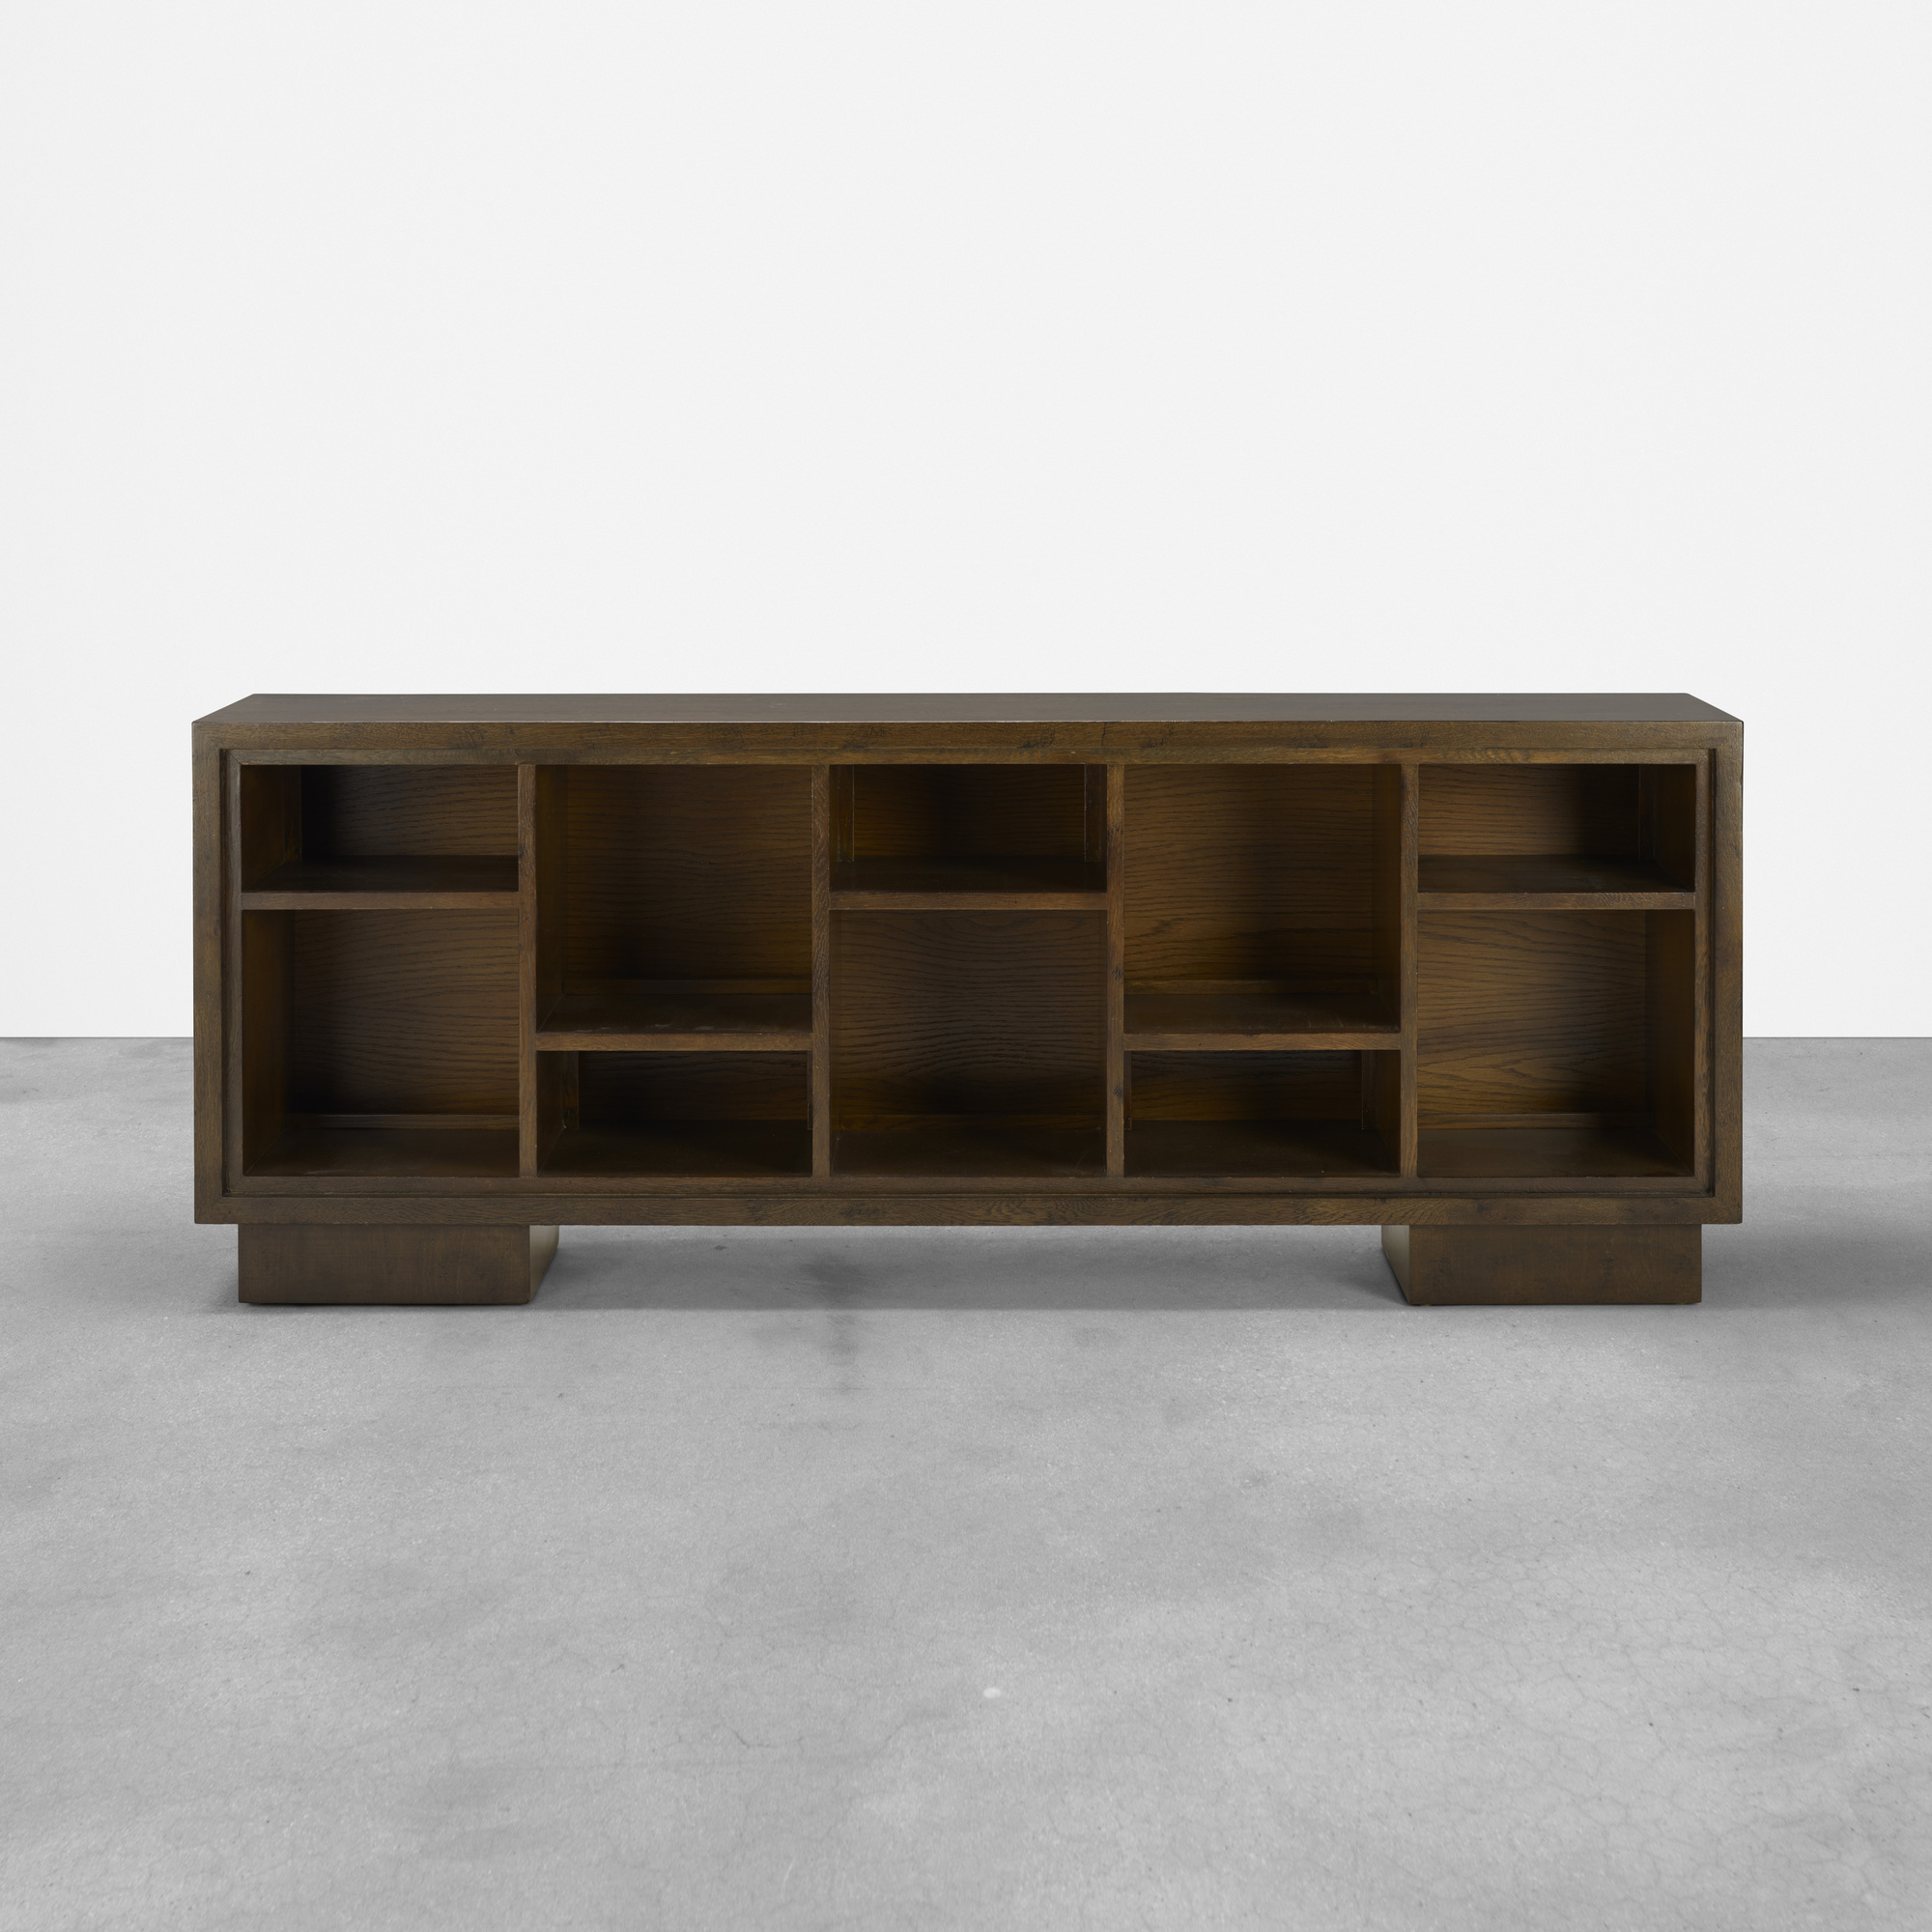 203: Samuel Marx / bookcase from the Morton D. May House (1 of 2)